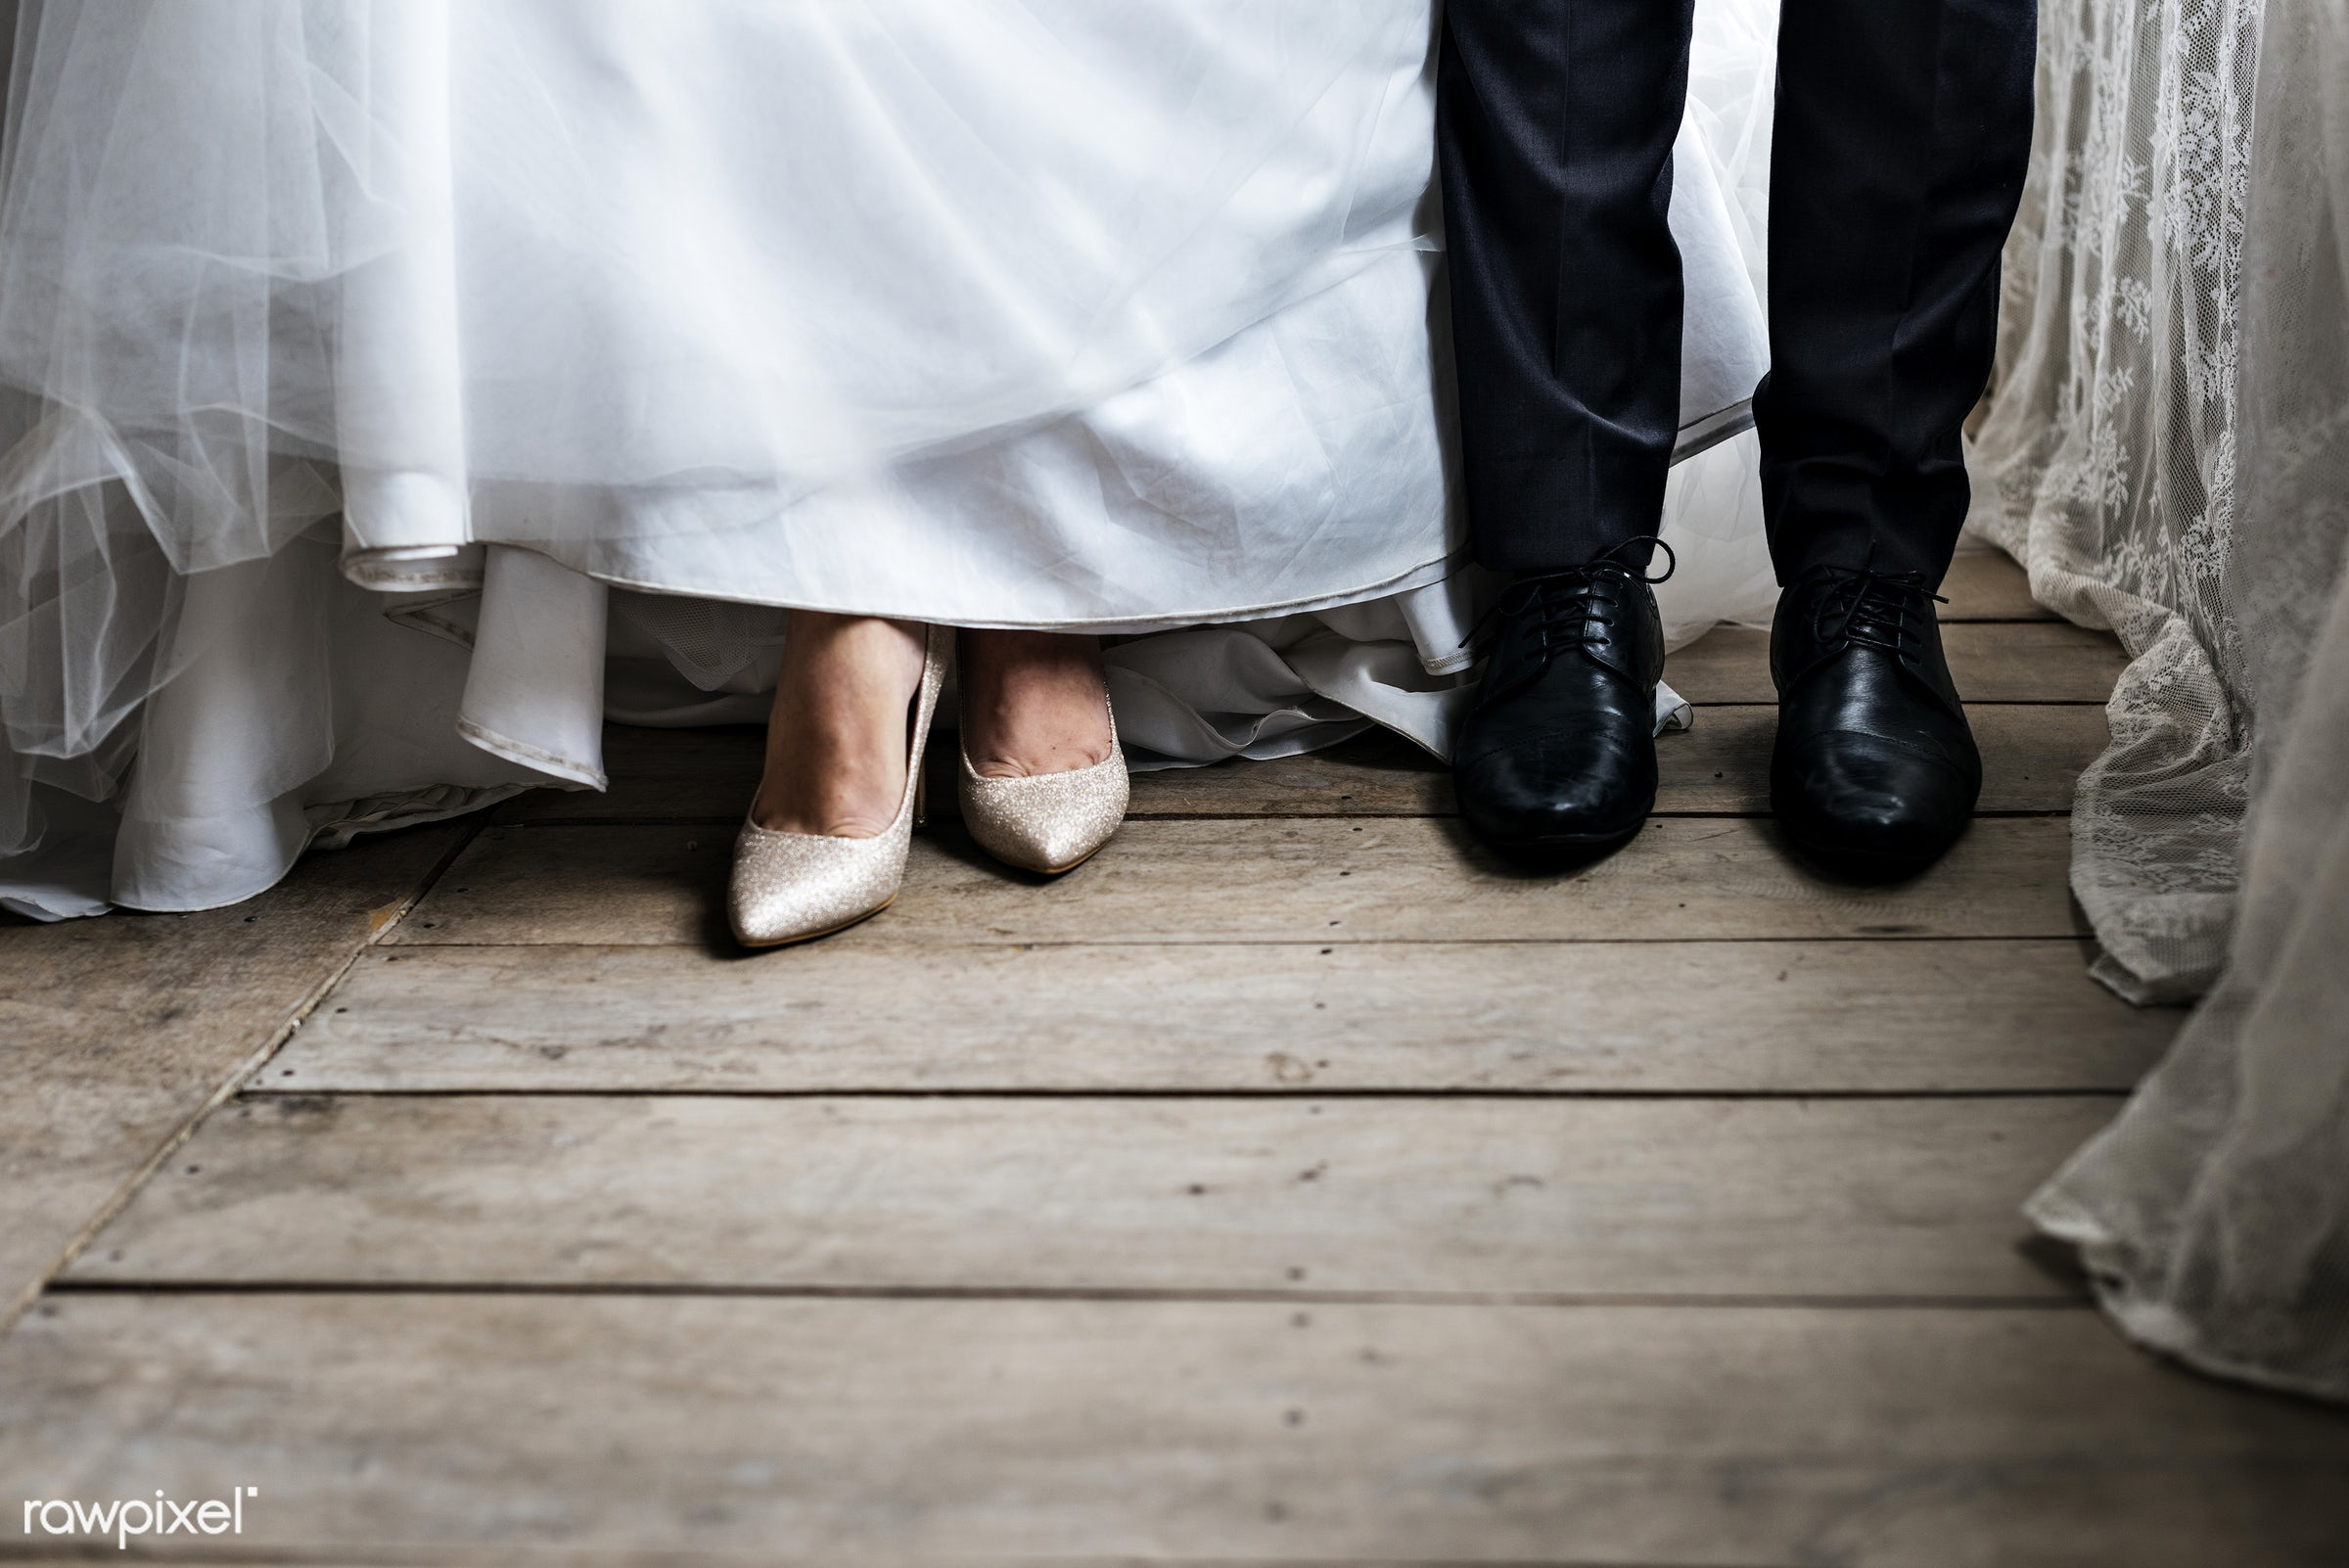 person, hug, smitten, people, together, caucasian, glamour, love, woman, gown, heels, cheerful, marry, gentleman, lace,...